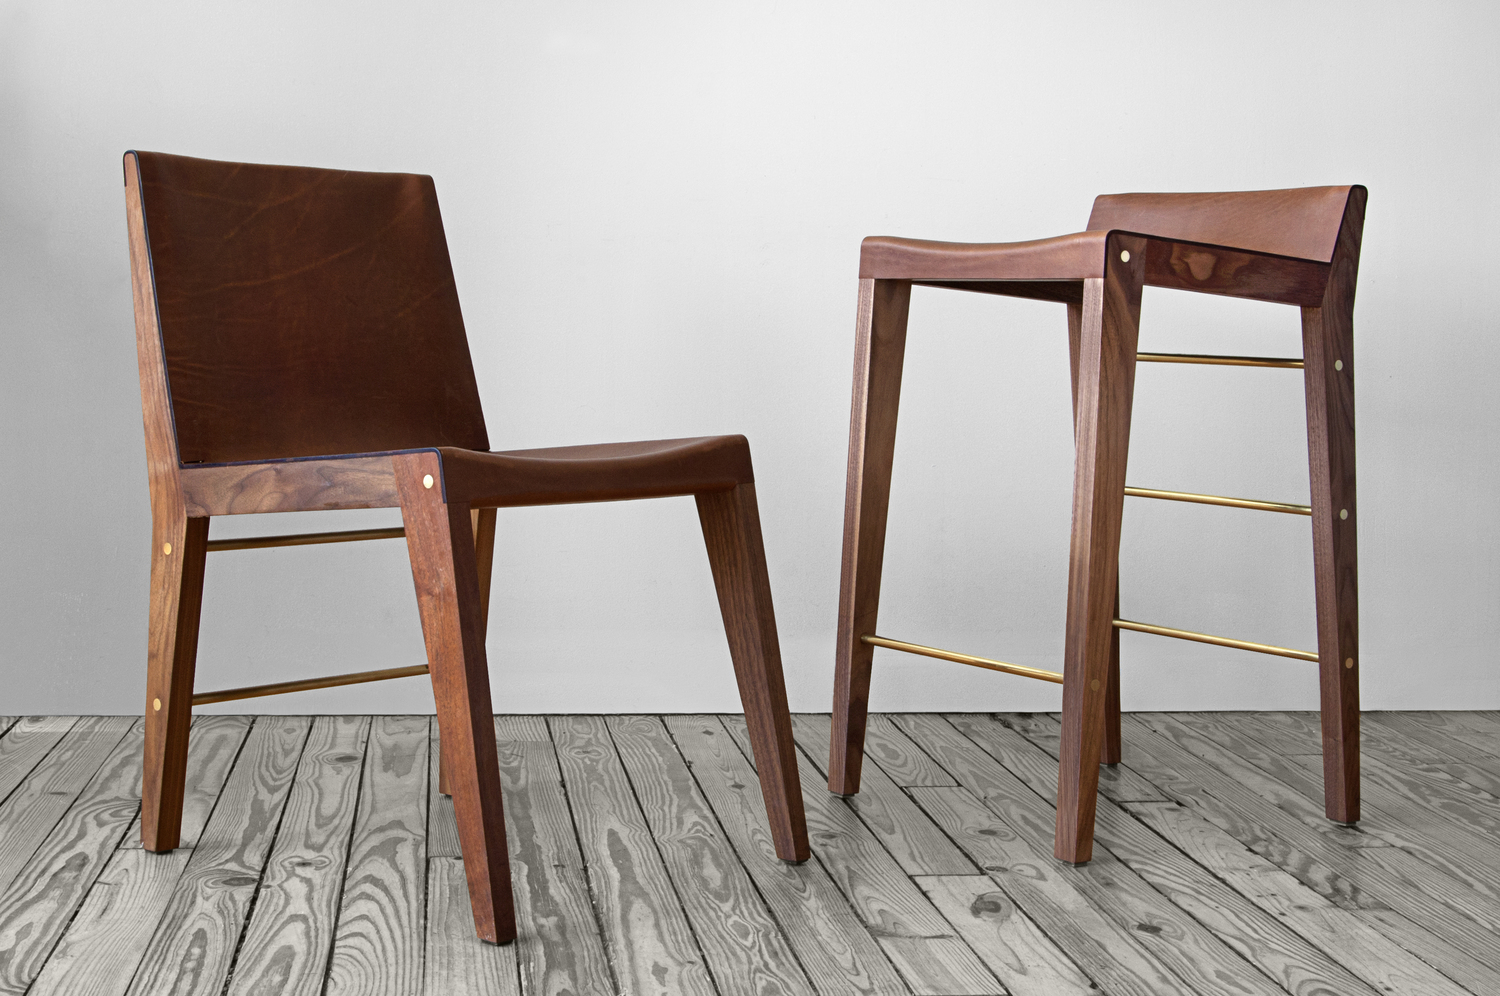 Asher israelow lincoln chair and stool